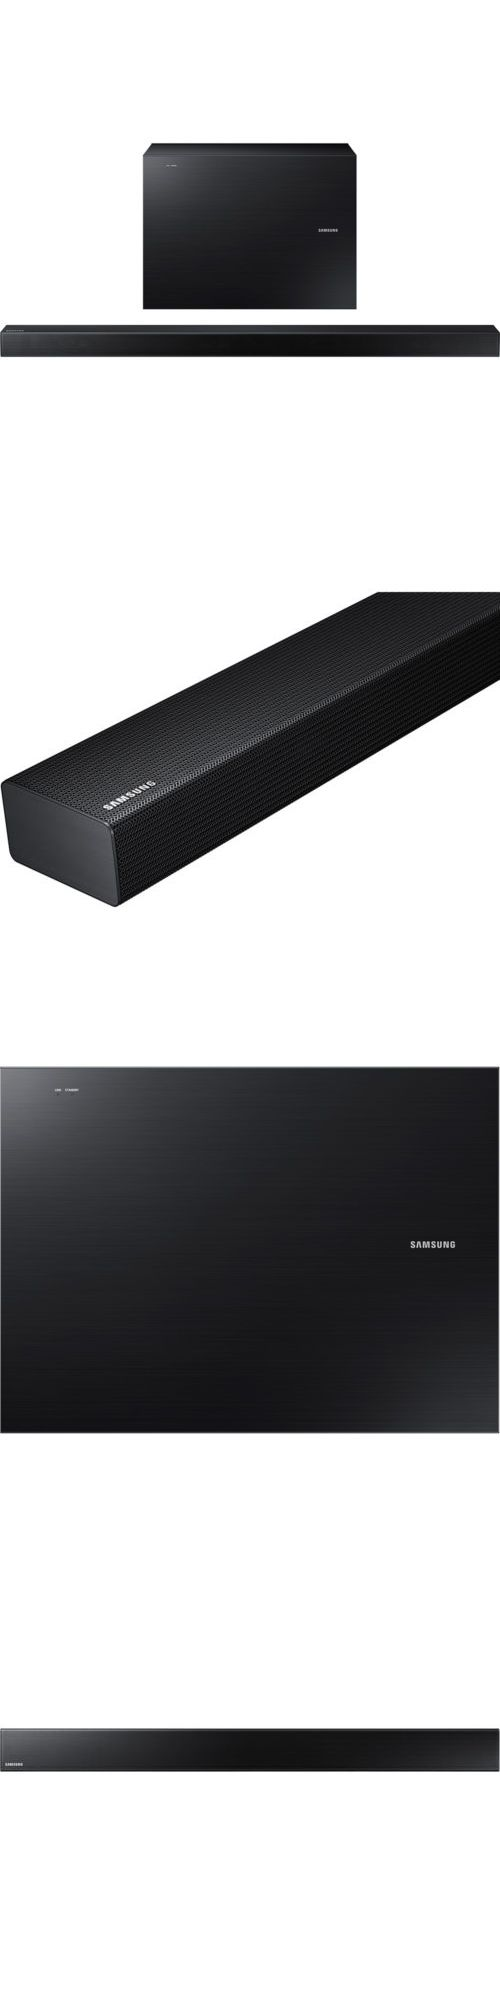 Home Theater Systems: Samsung Hw-K550 340 Watt 3.1 Channel Soundbar W/ Wireless Subwoofer And Bluetooth -> BUY IT NOW ONLY: $297.99 on eBay!